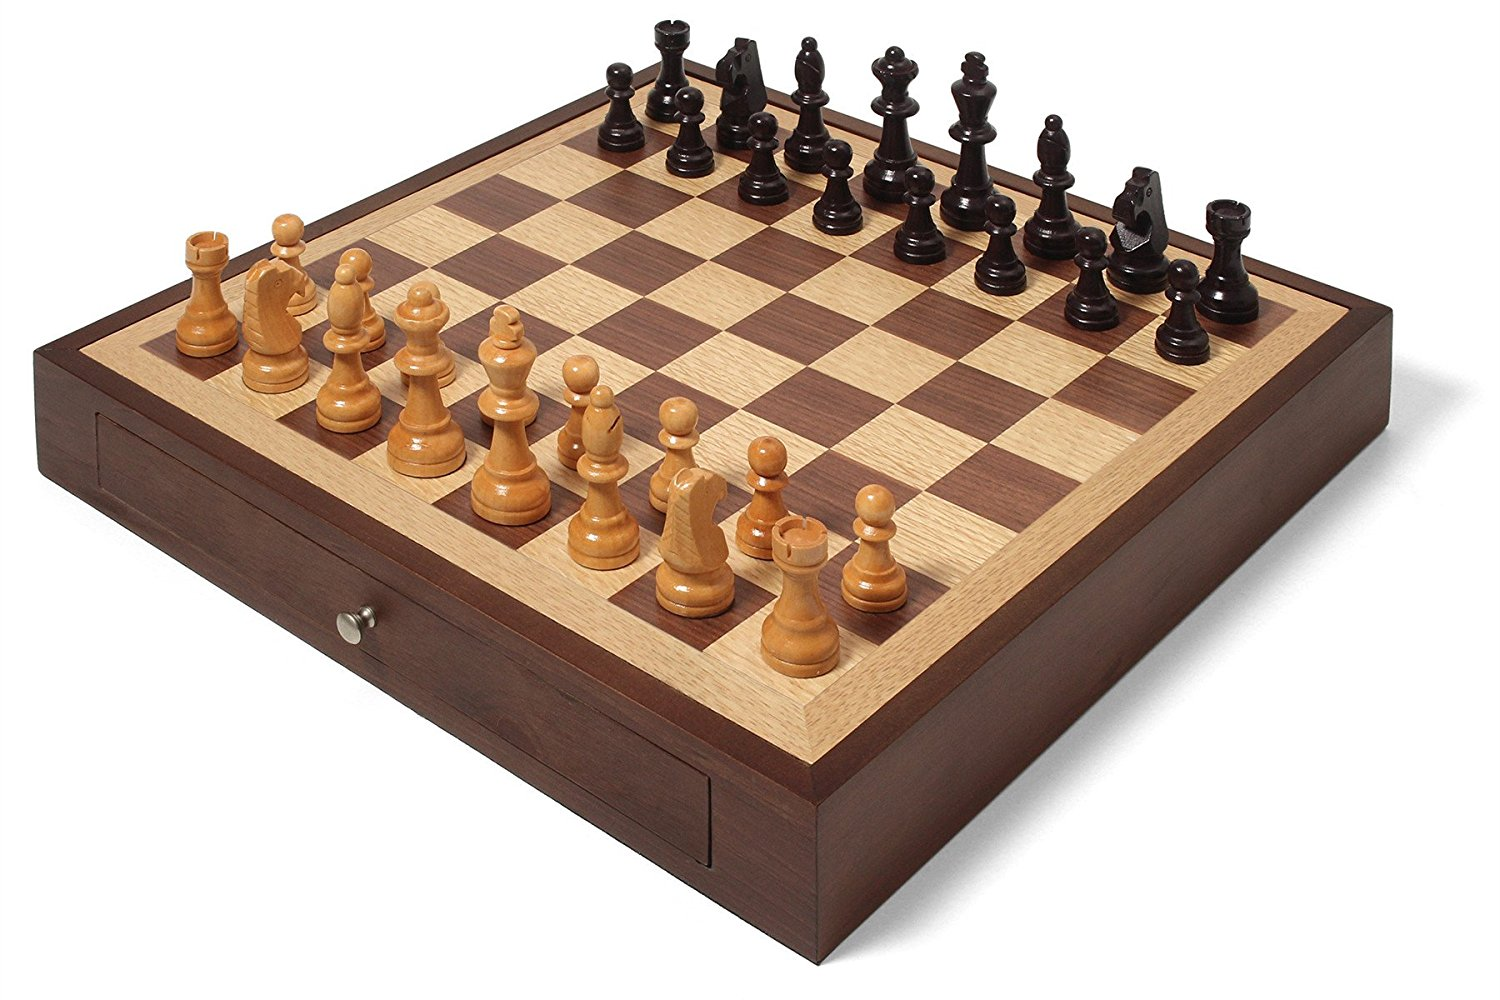 Collector's Edition Chess Set with Walnut & Oak Finish by Swing Design